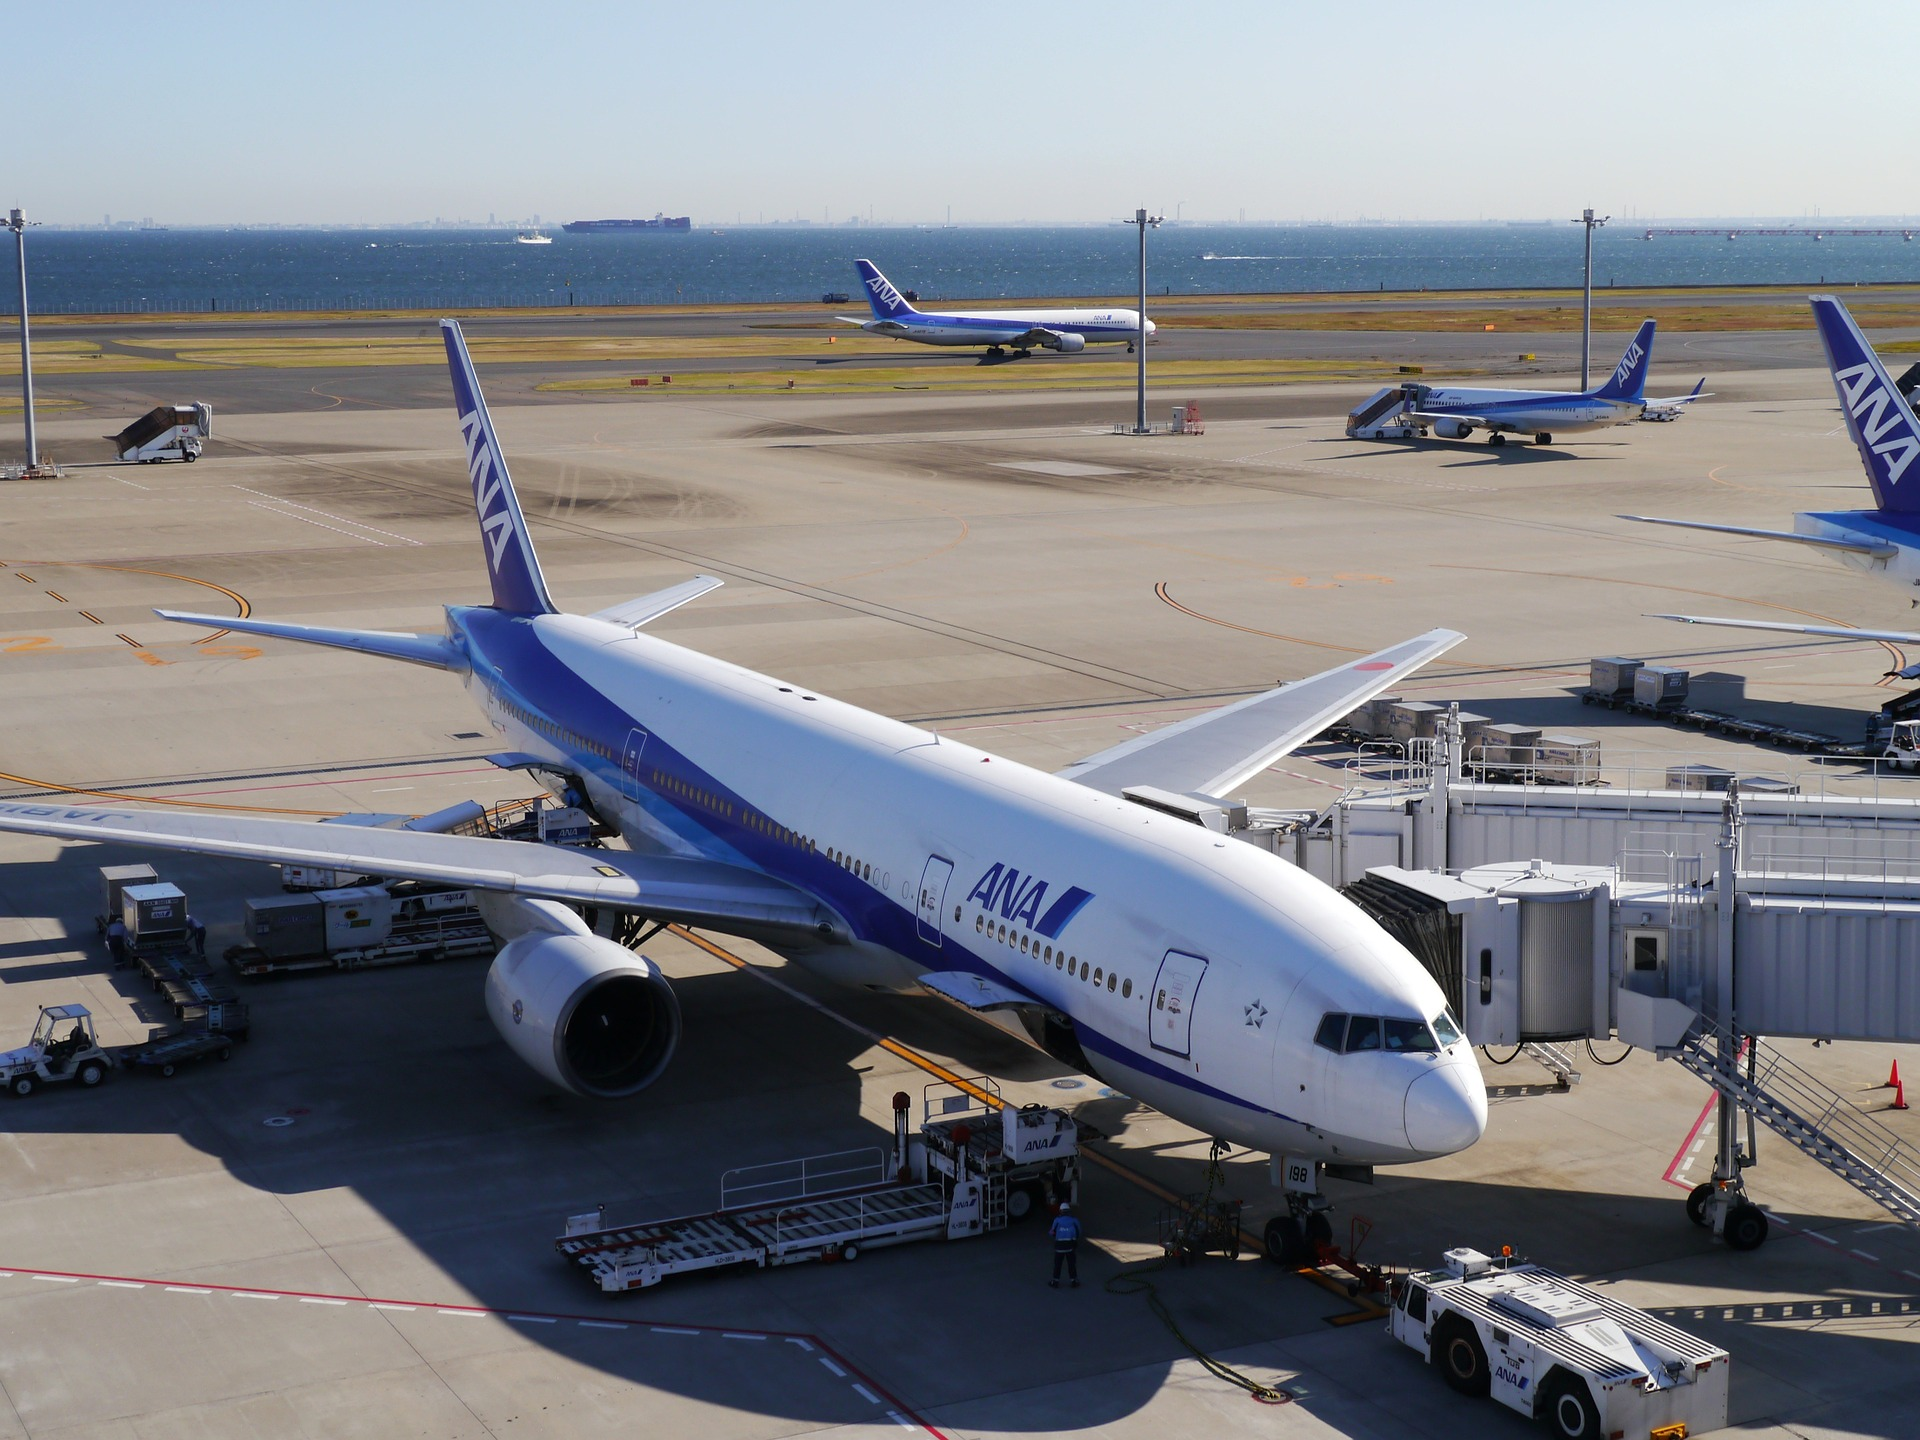 ANA Extends Miles and SKY COIN Expiration – See How to Register